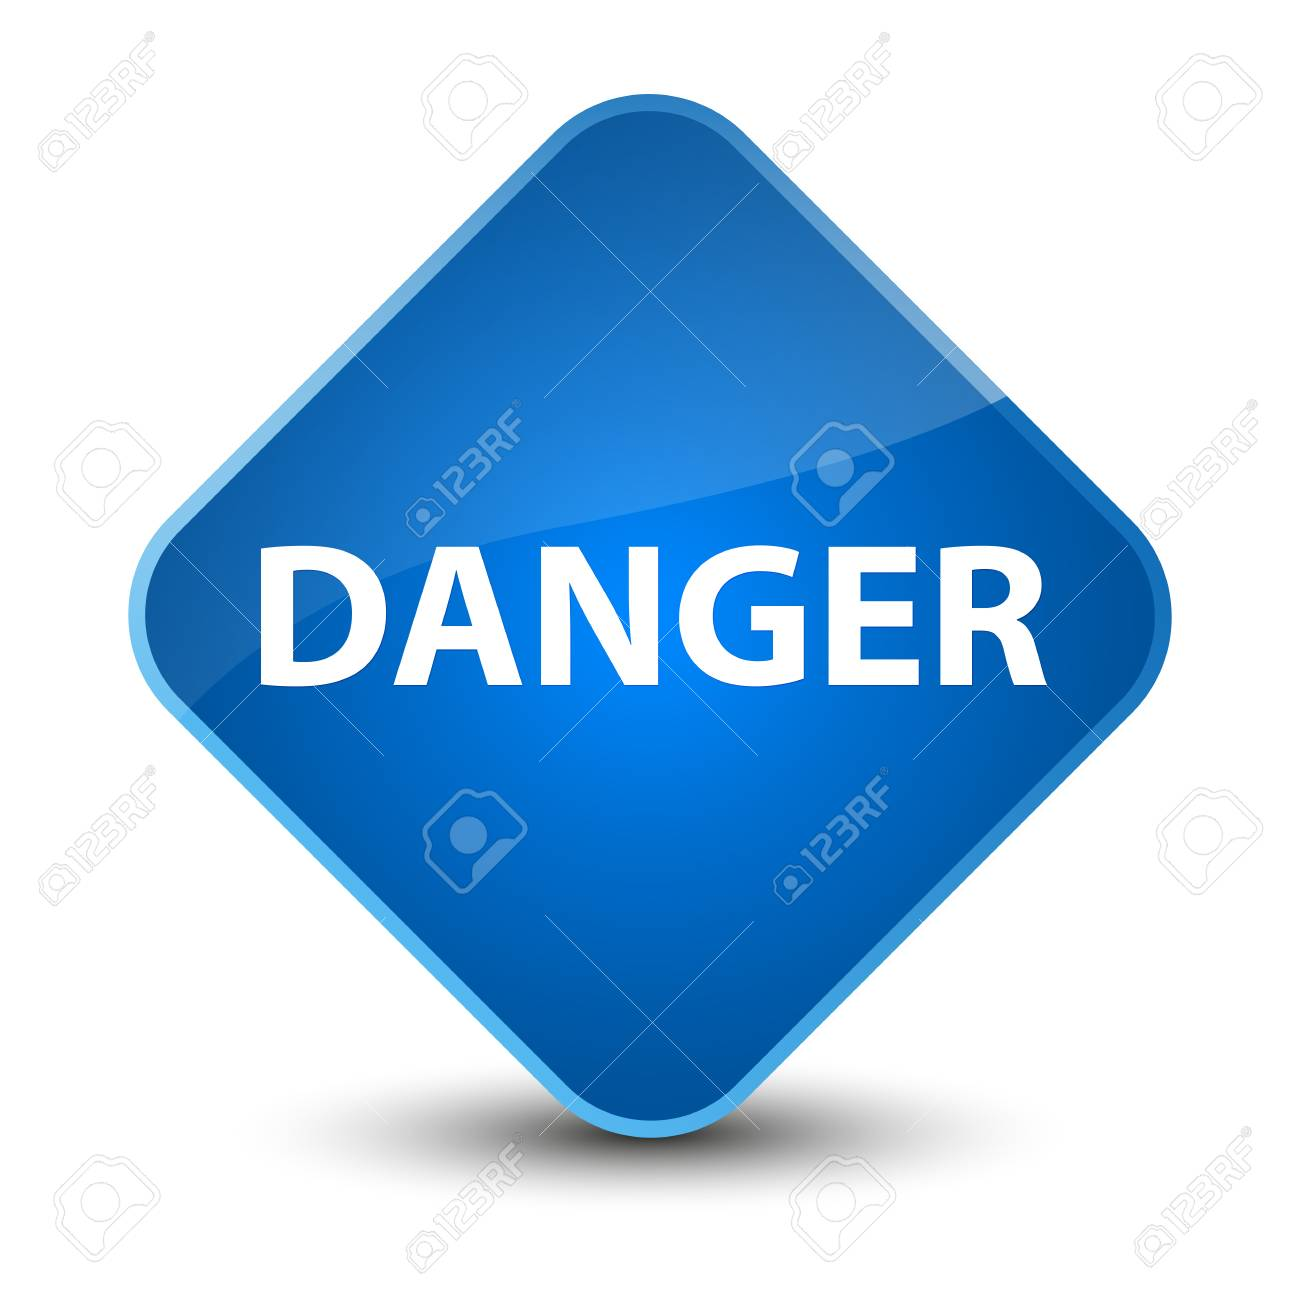 danger depositphotos orange elegant stock diamond photo faysalahamed button